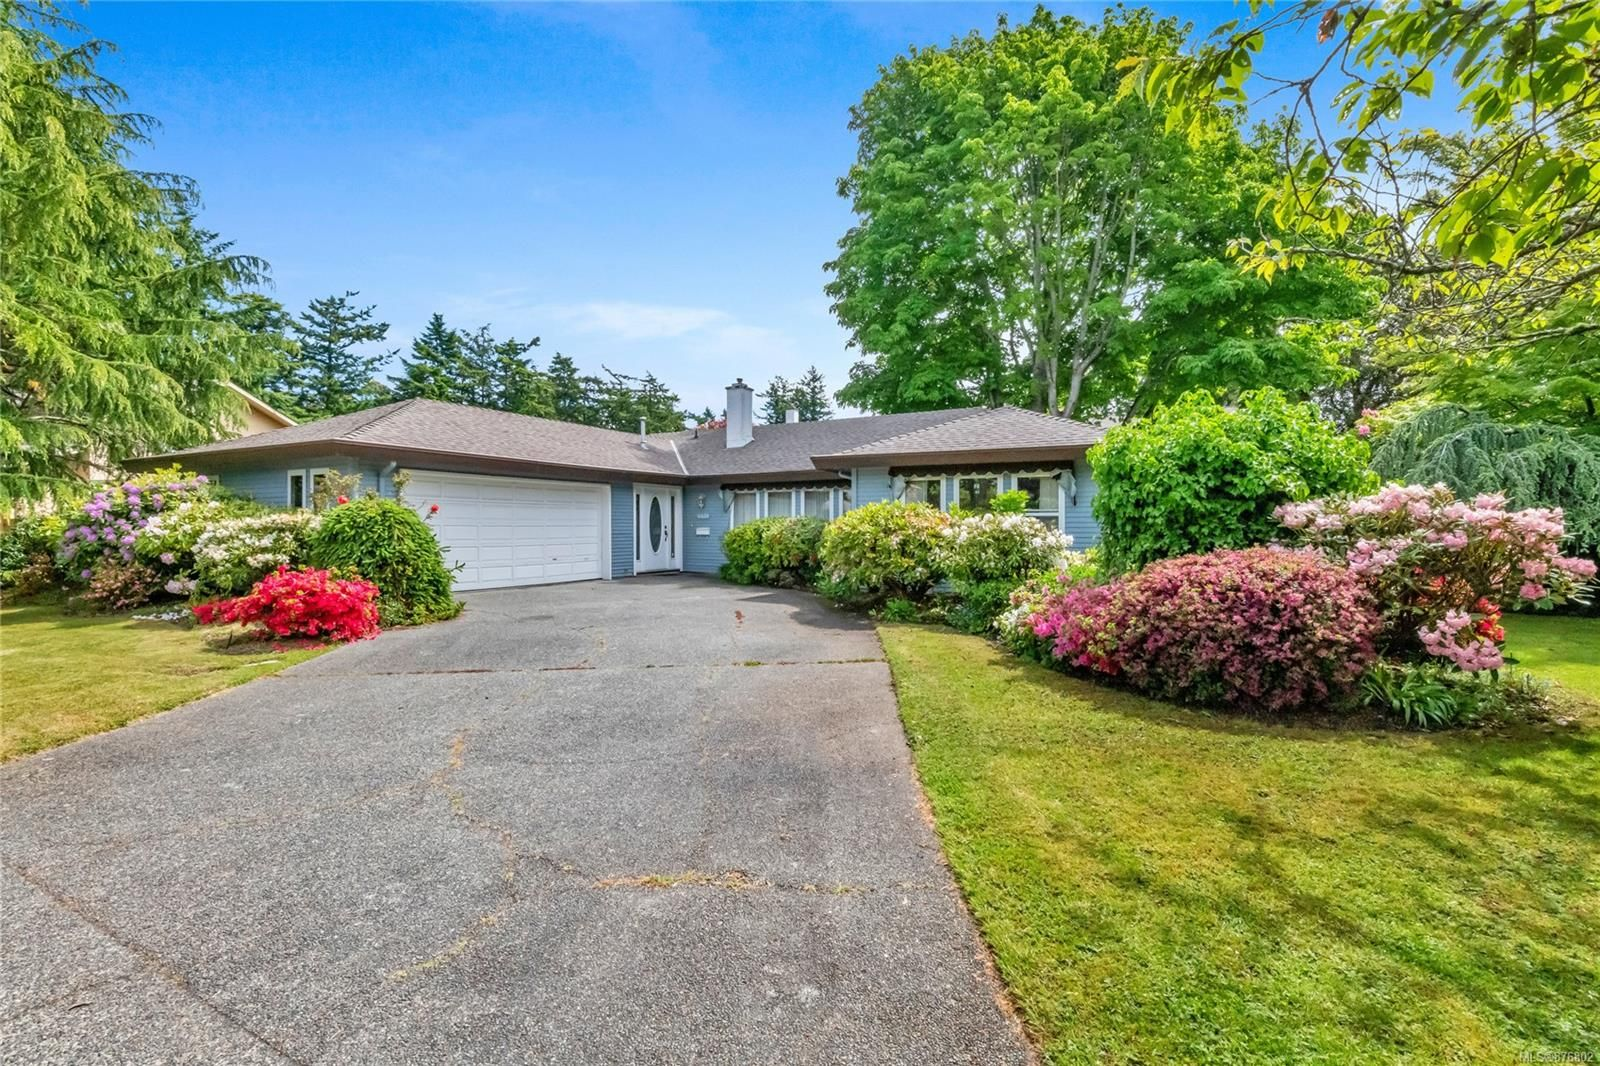 Main Photo: 4401 Colleen Crt in : SE Gordon Head House for sale (Saanich East)  : MLS®# 876802